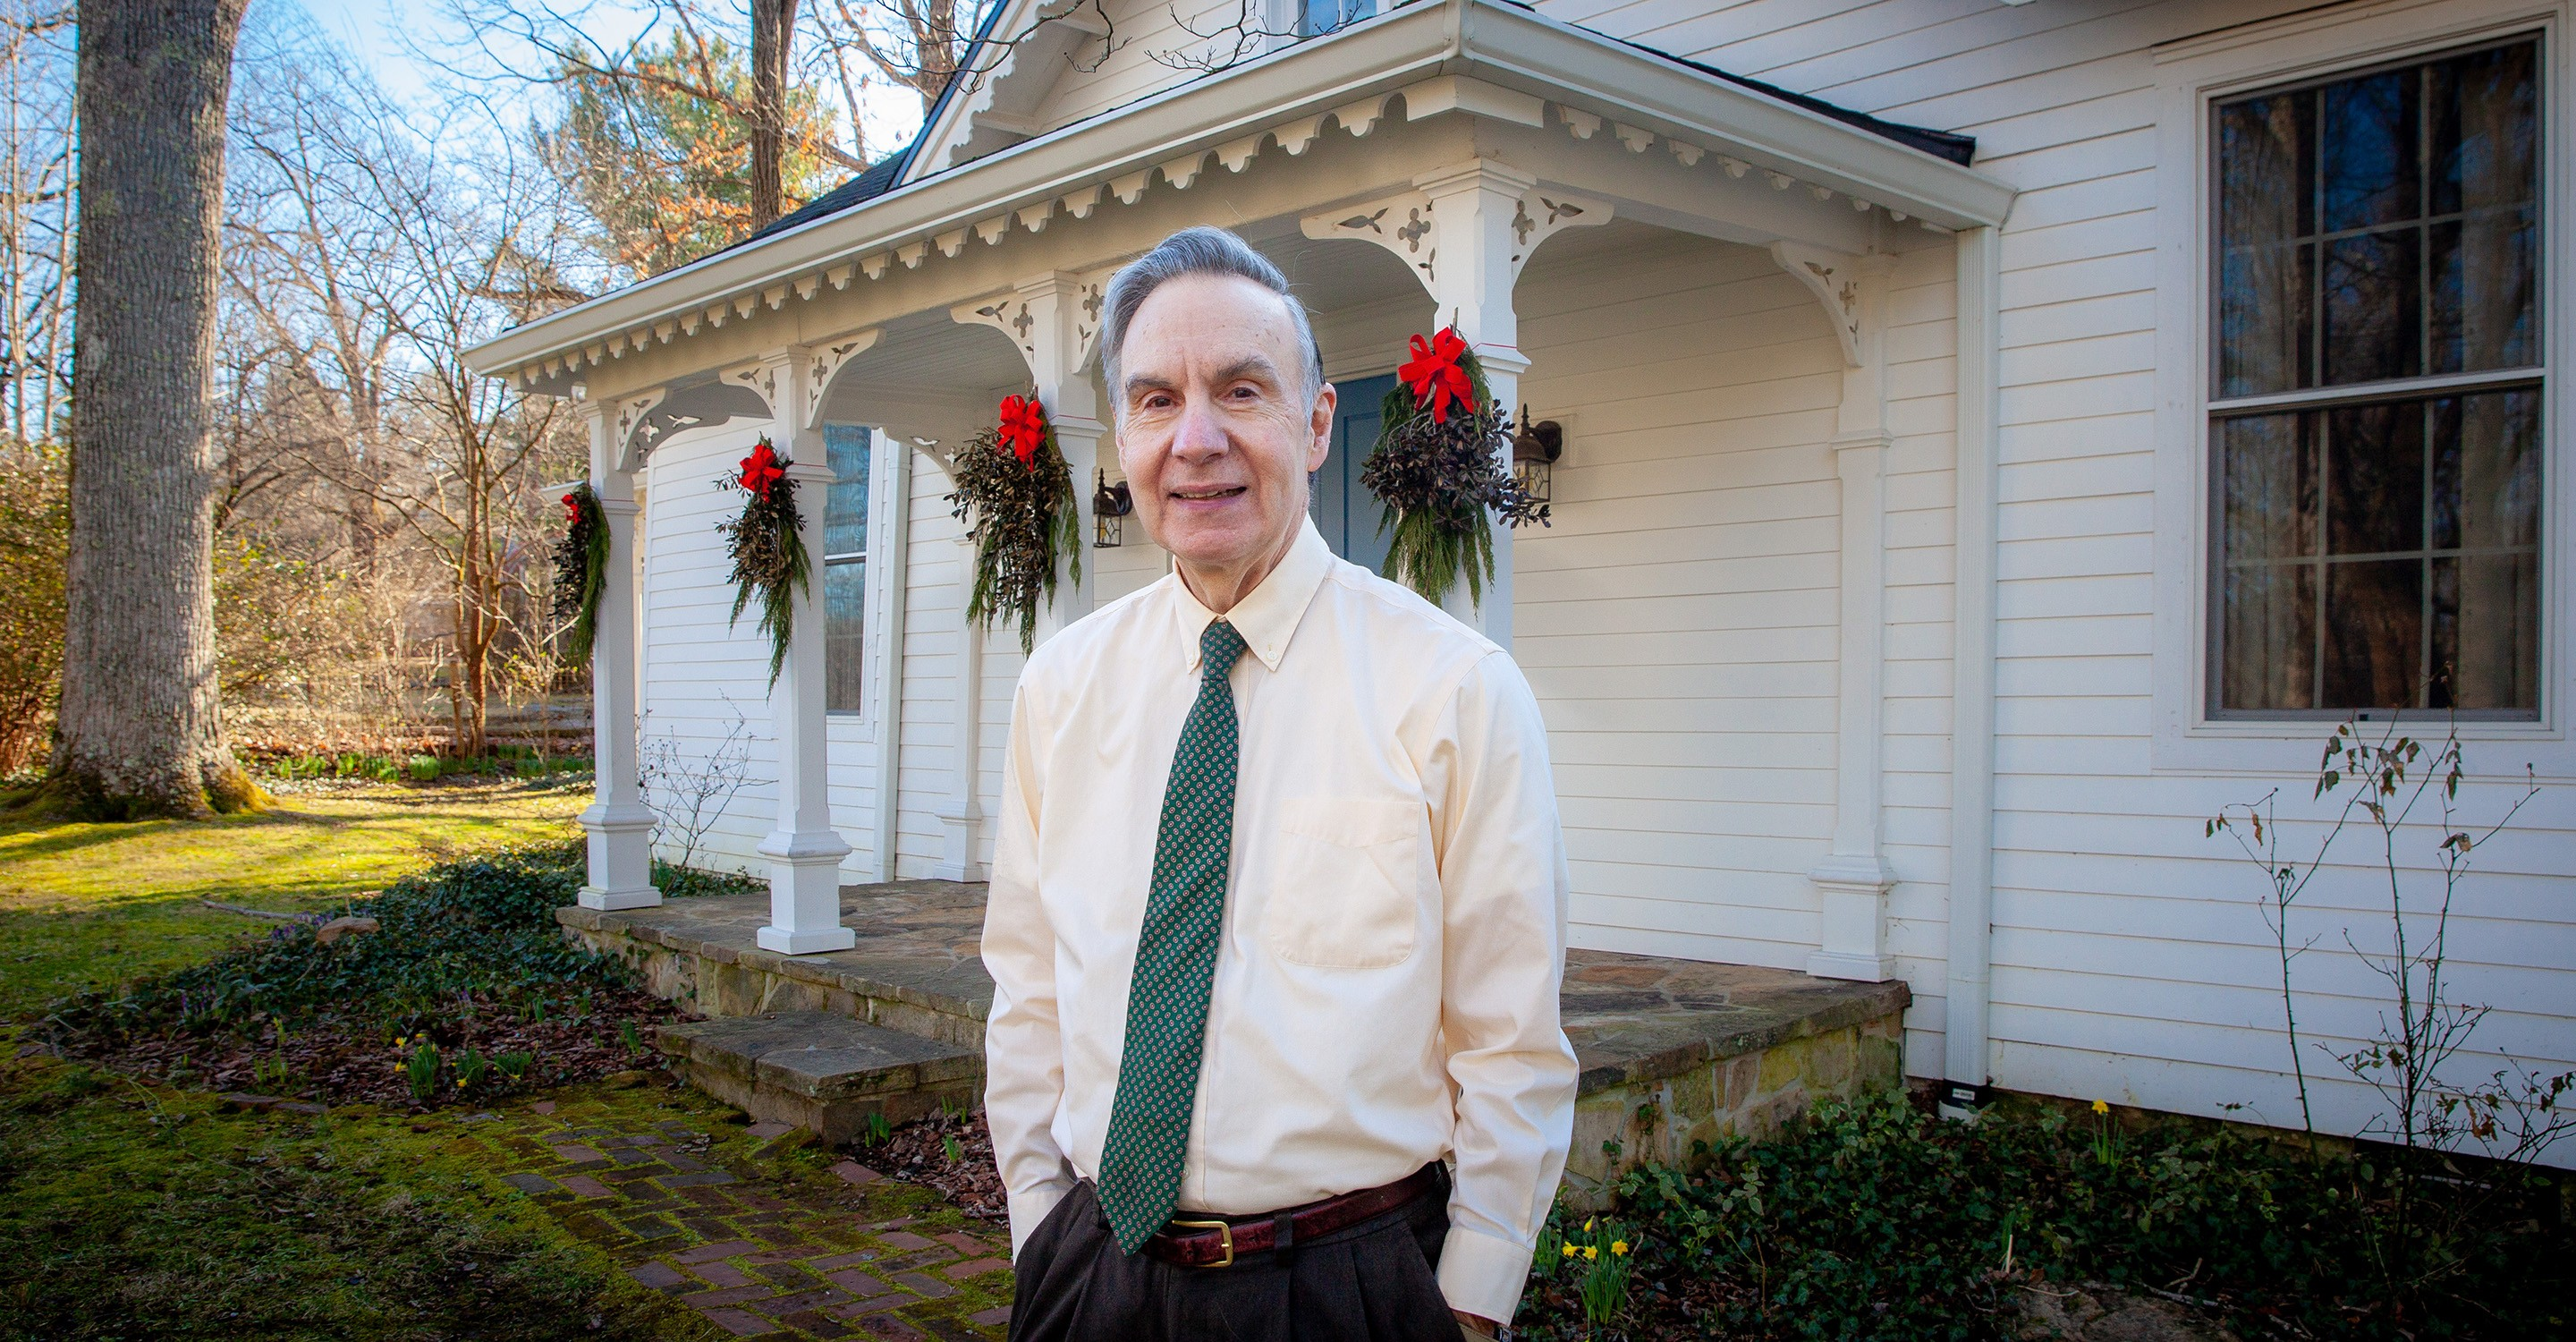 John Gatta at his home on Tennessee Avenue, built in 1871, in which he says he feels a connection to the lives that passed through it before his family arrived. Photo by Buck Butler